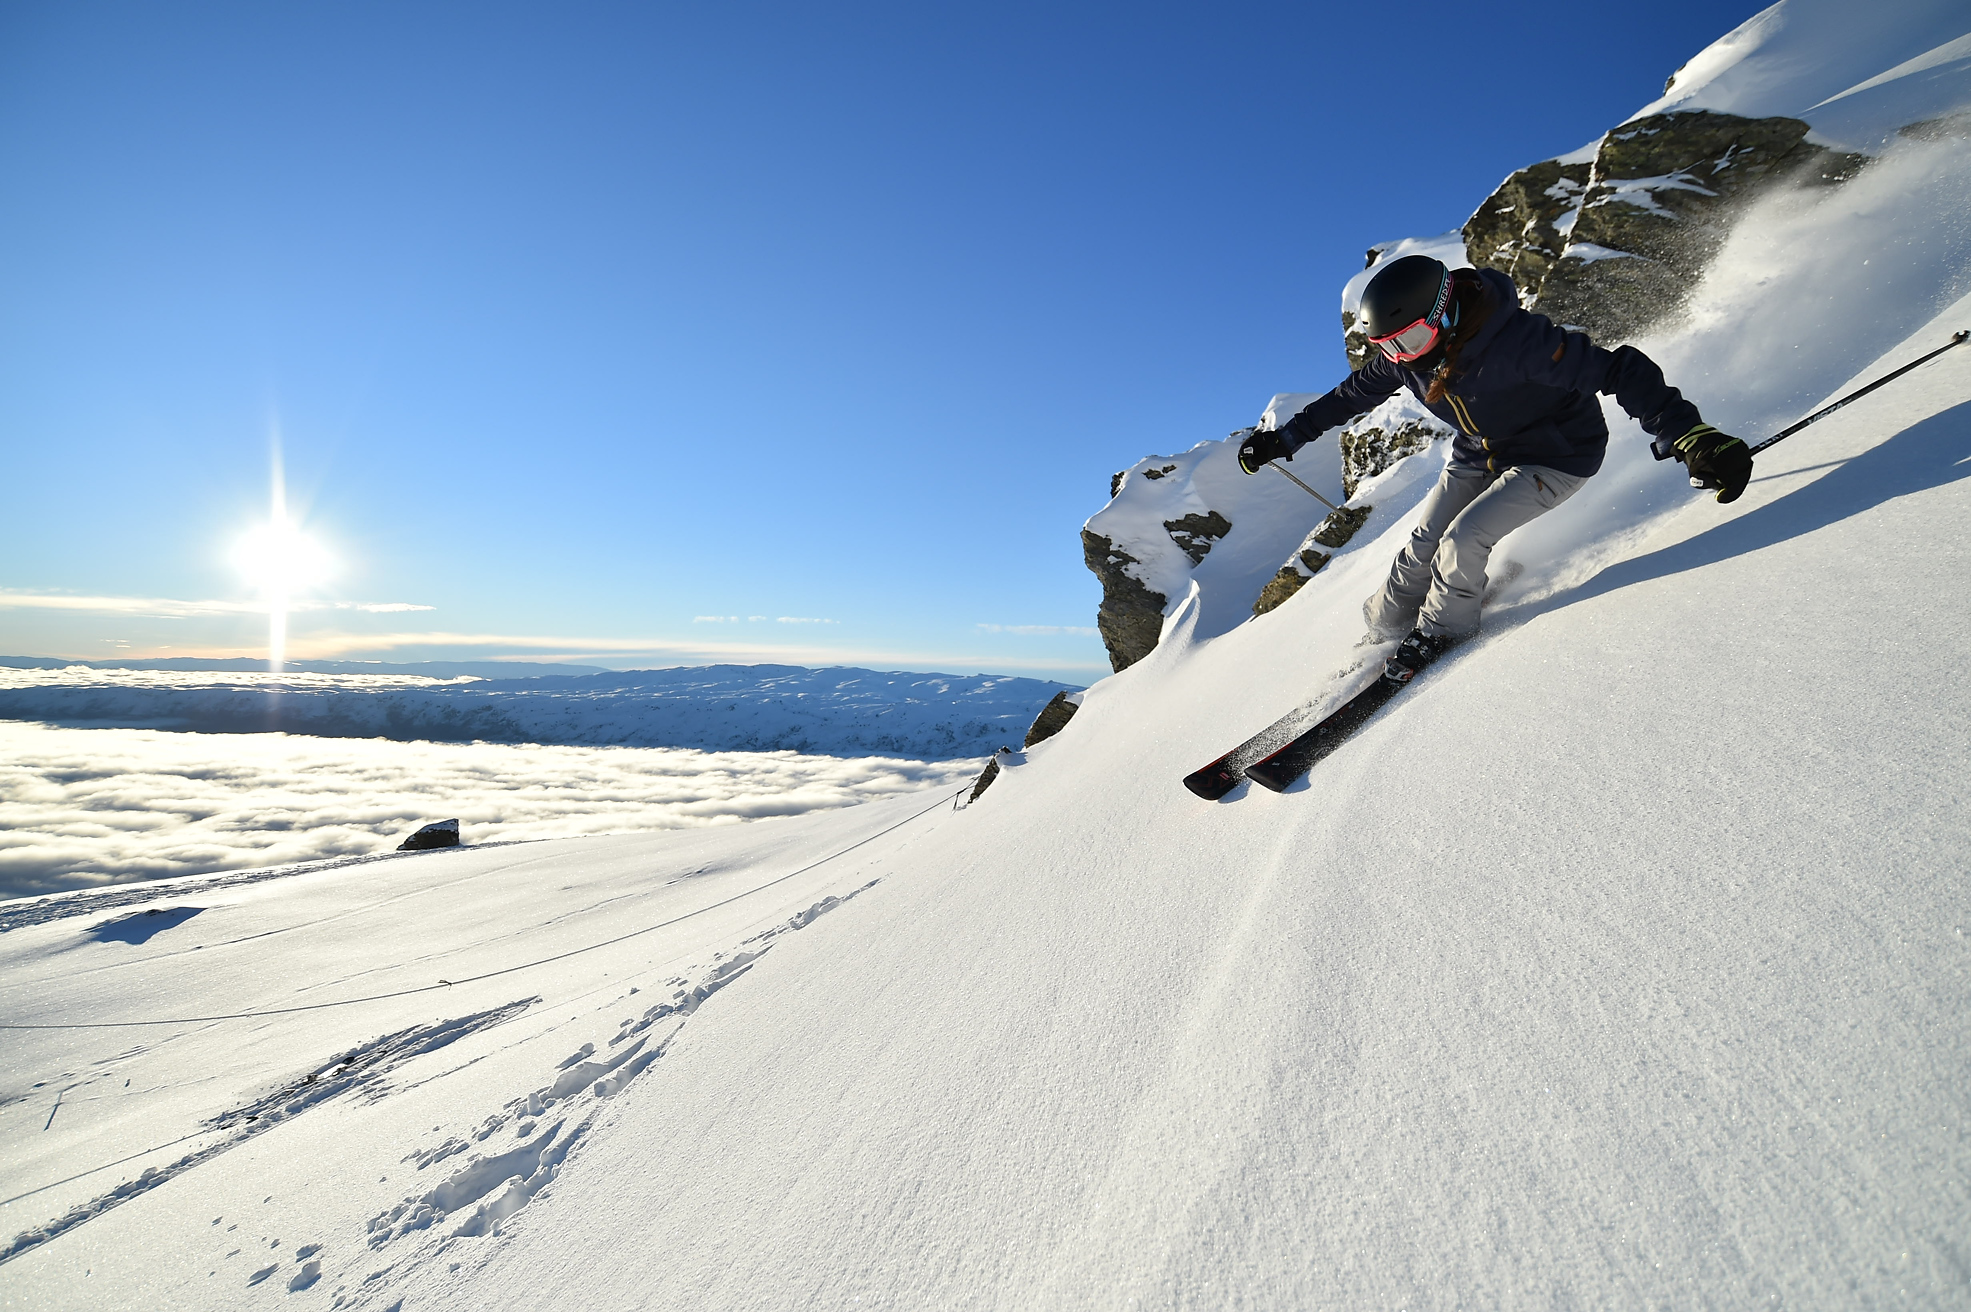 cardrona-advanced ski lessons-adult ski lessons- big mountain - expert